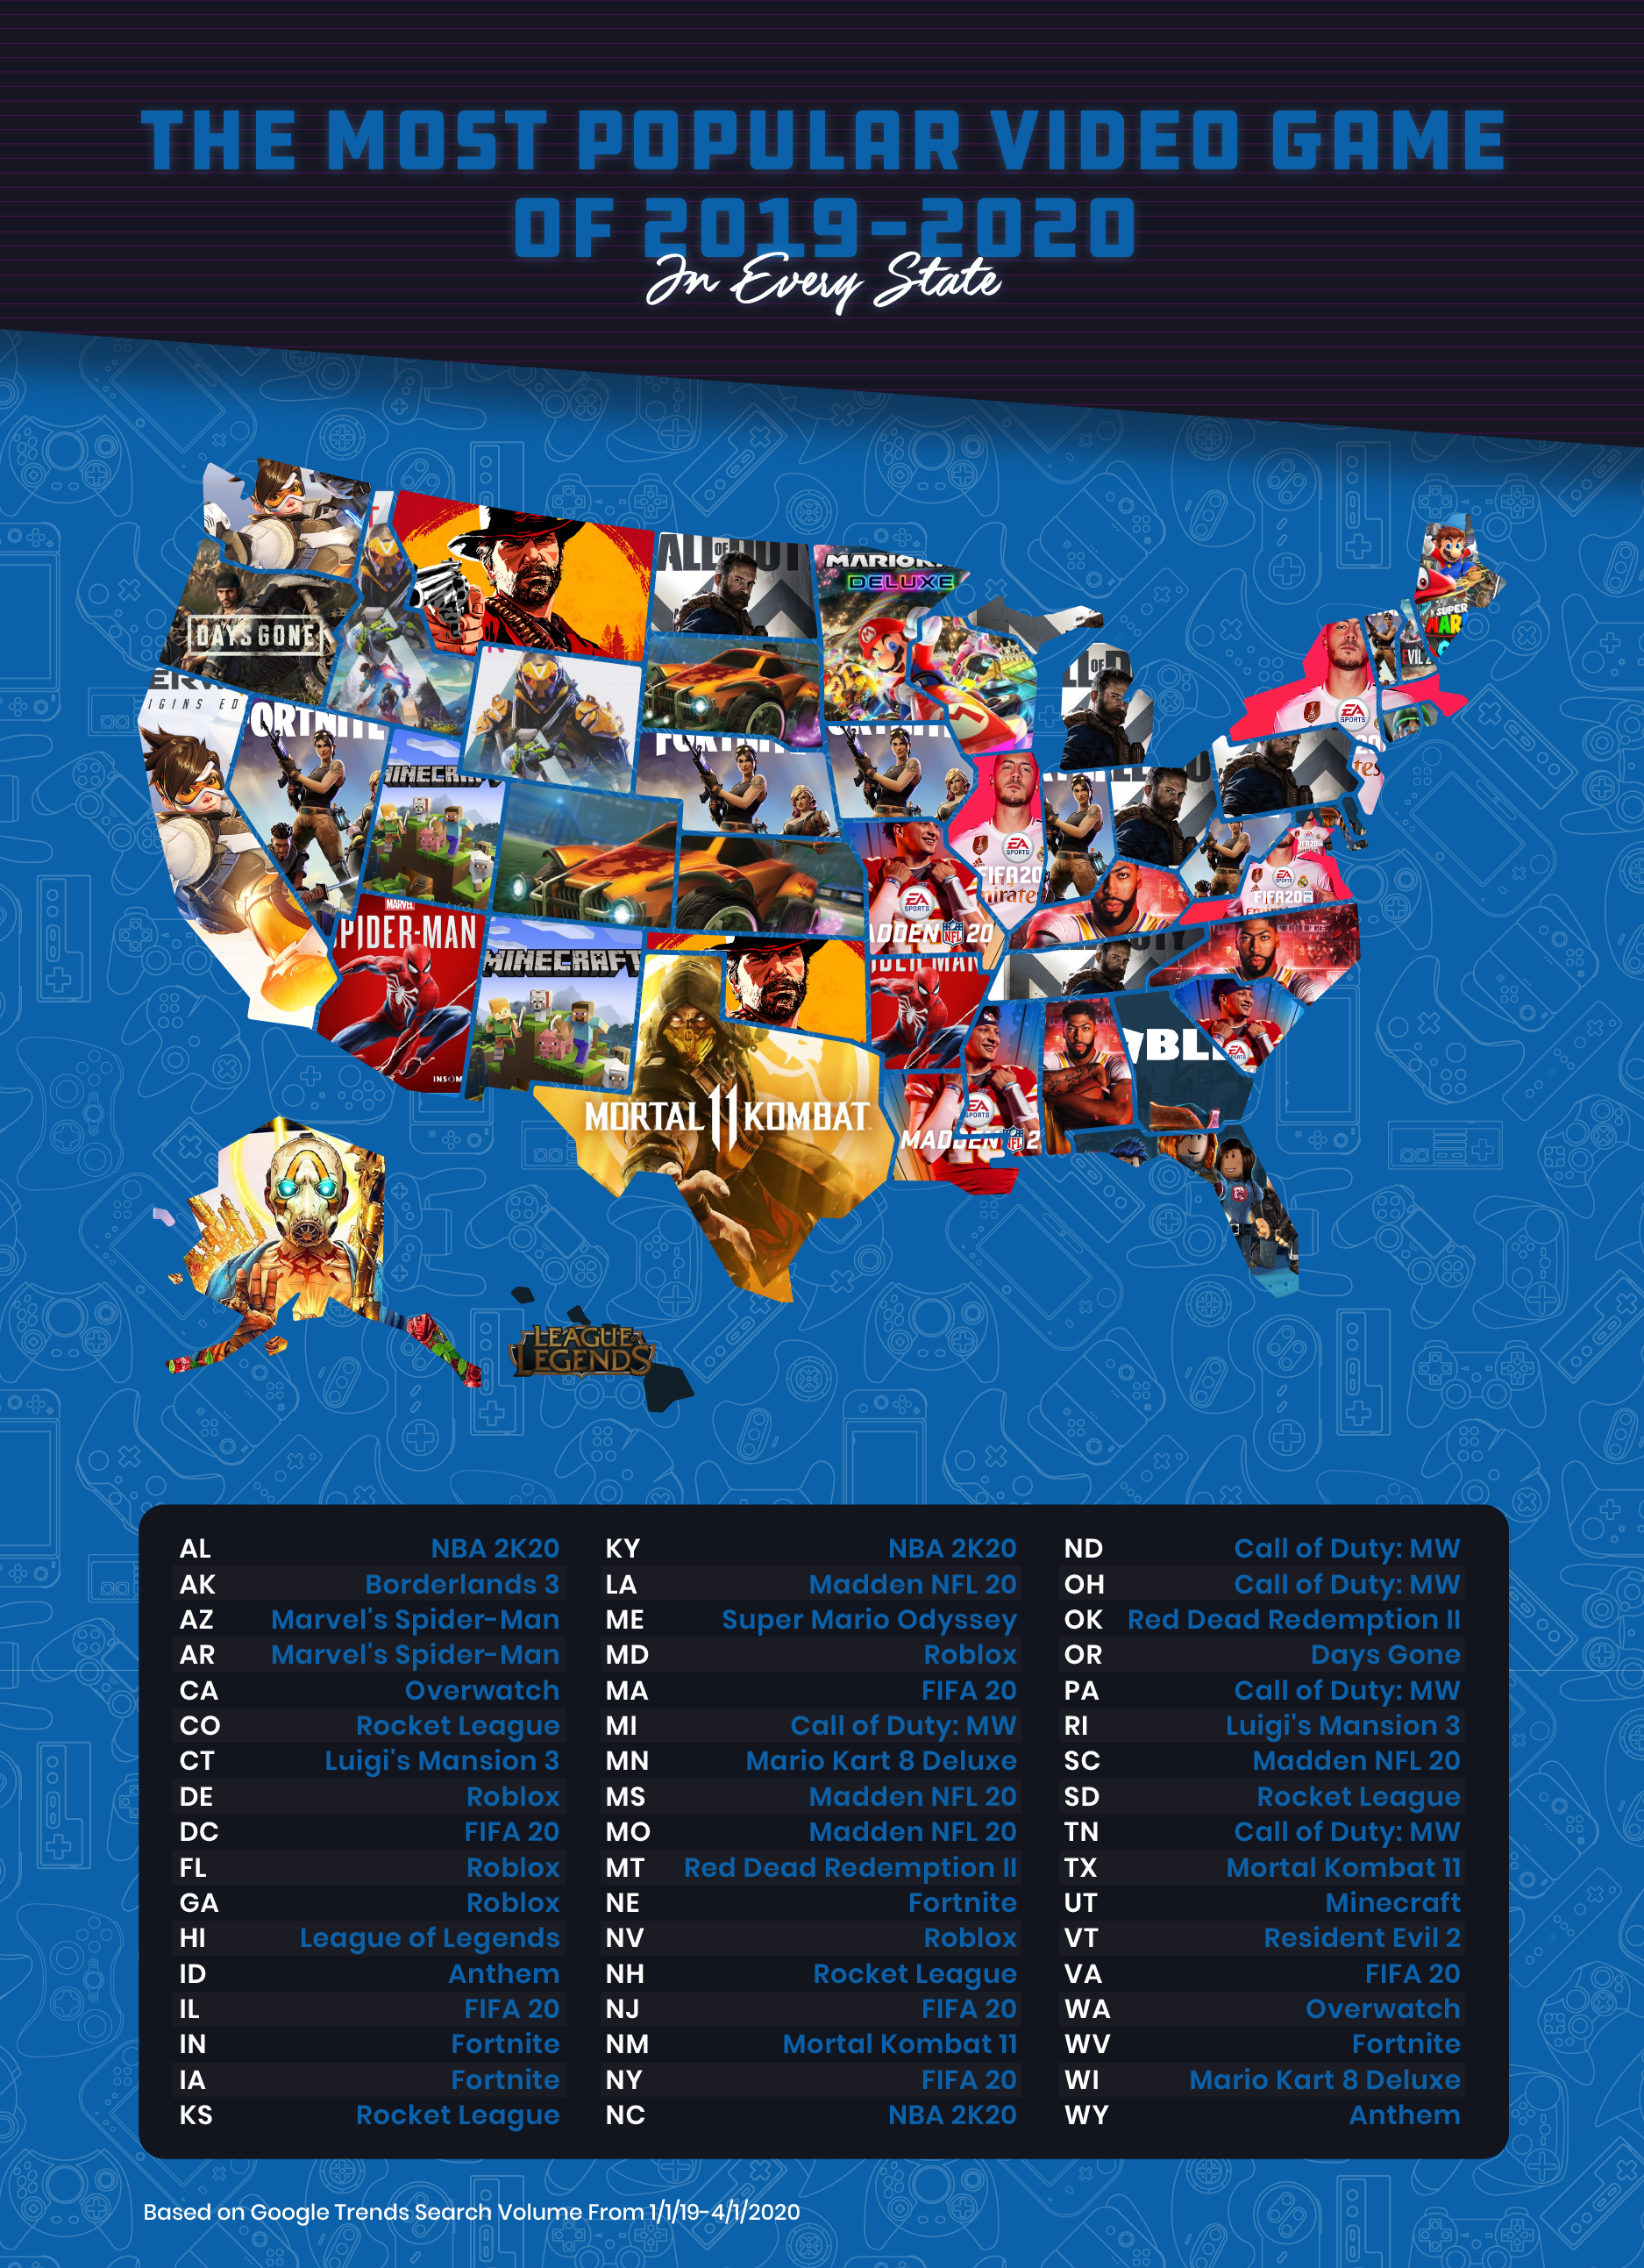 US map showing the most popular video games of 2019-2020 in each state